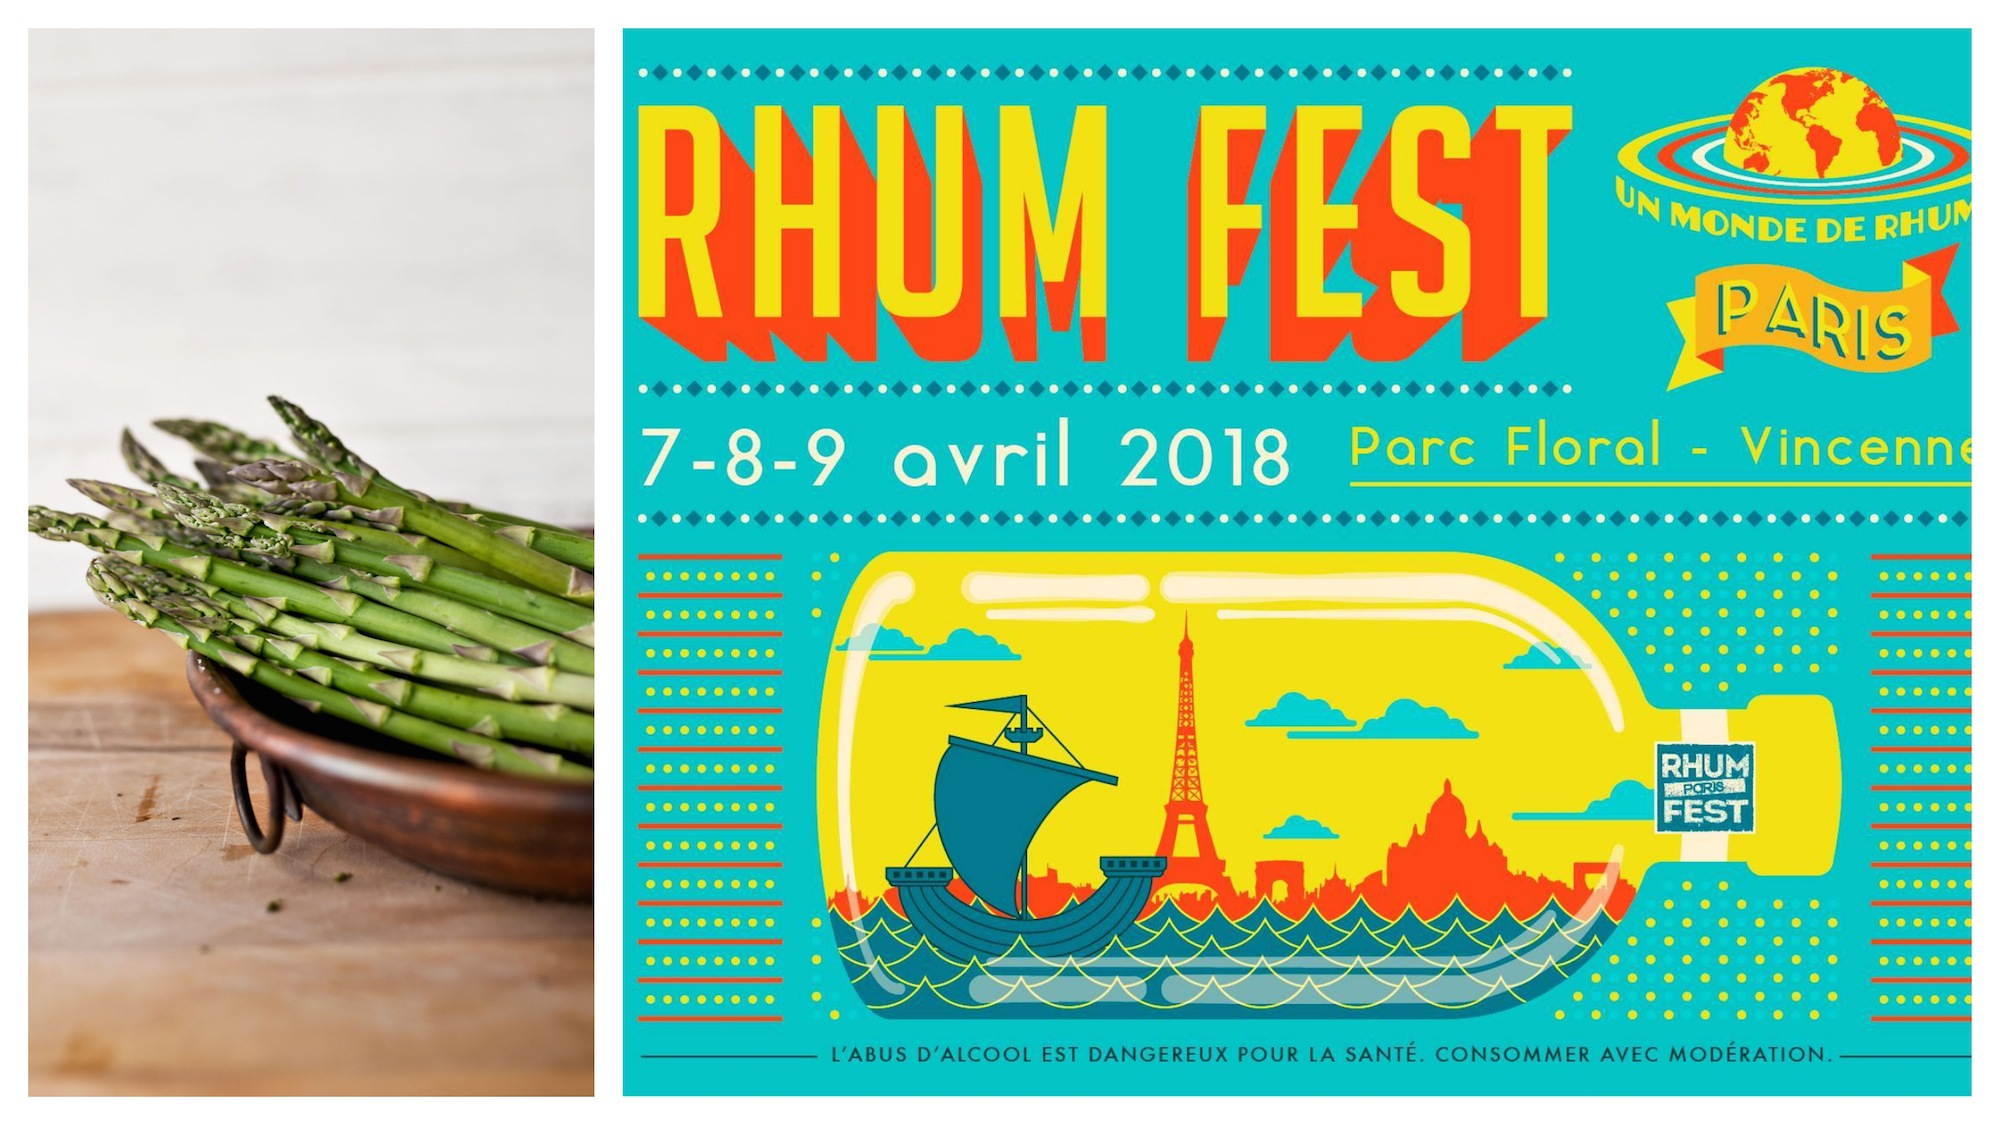 A round-up of events in Paris in April like food festivals and a rhum festival.